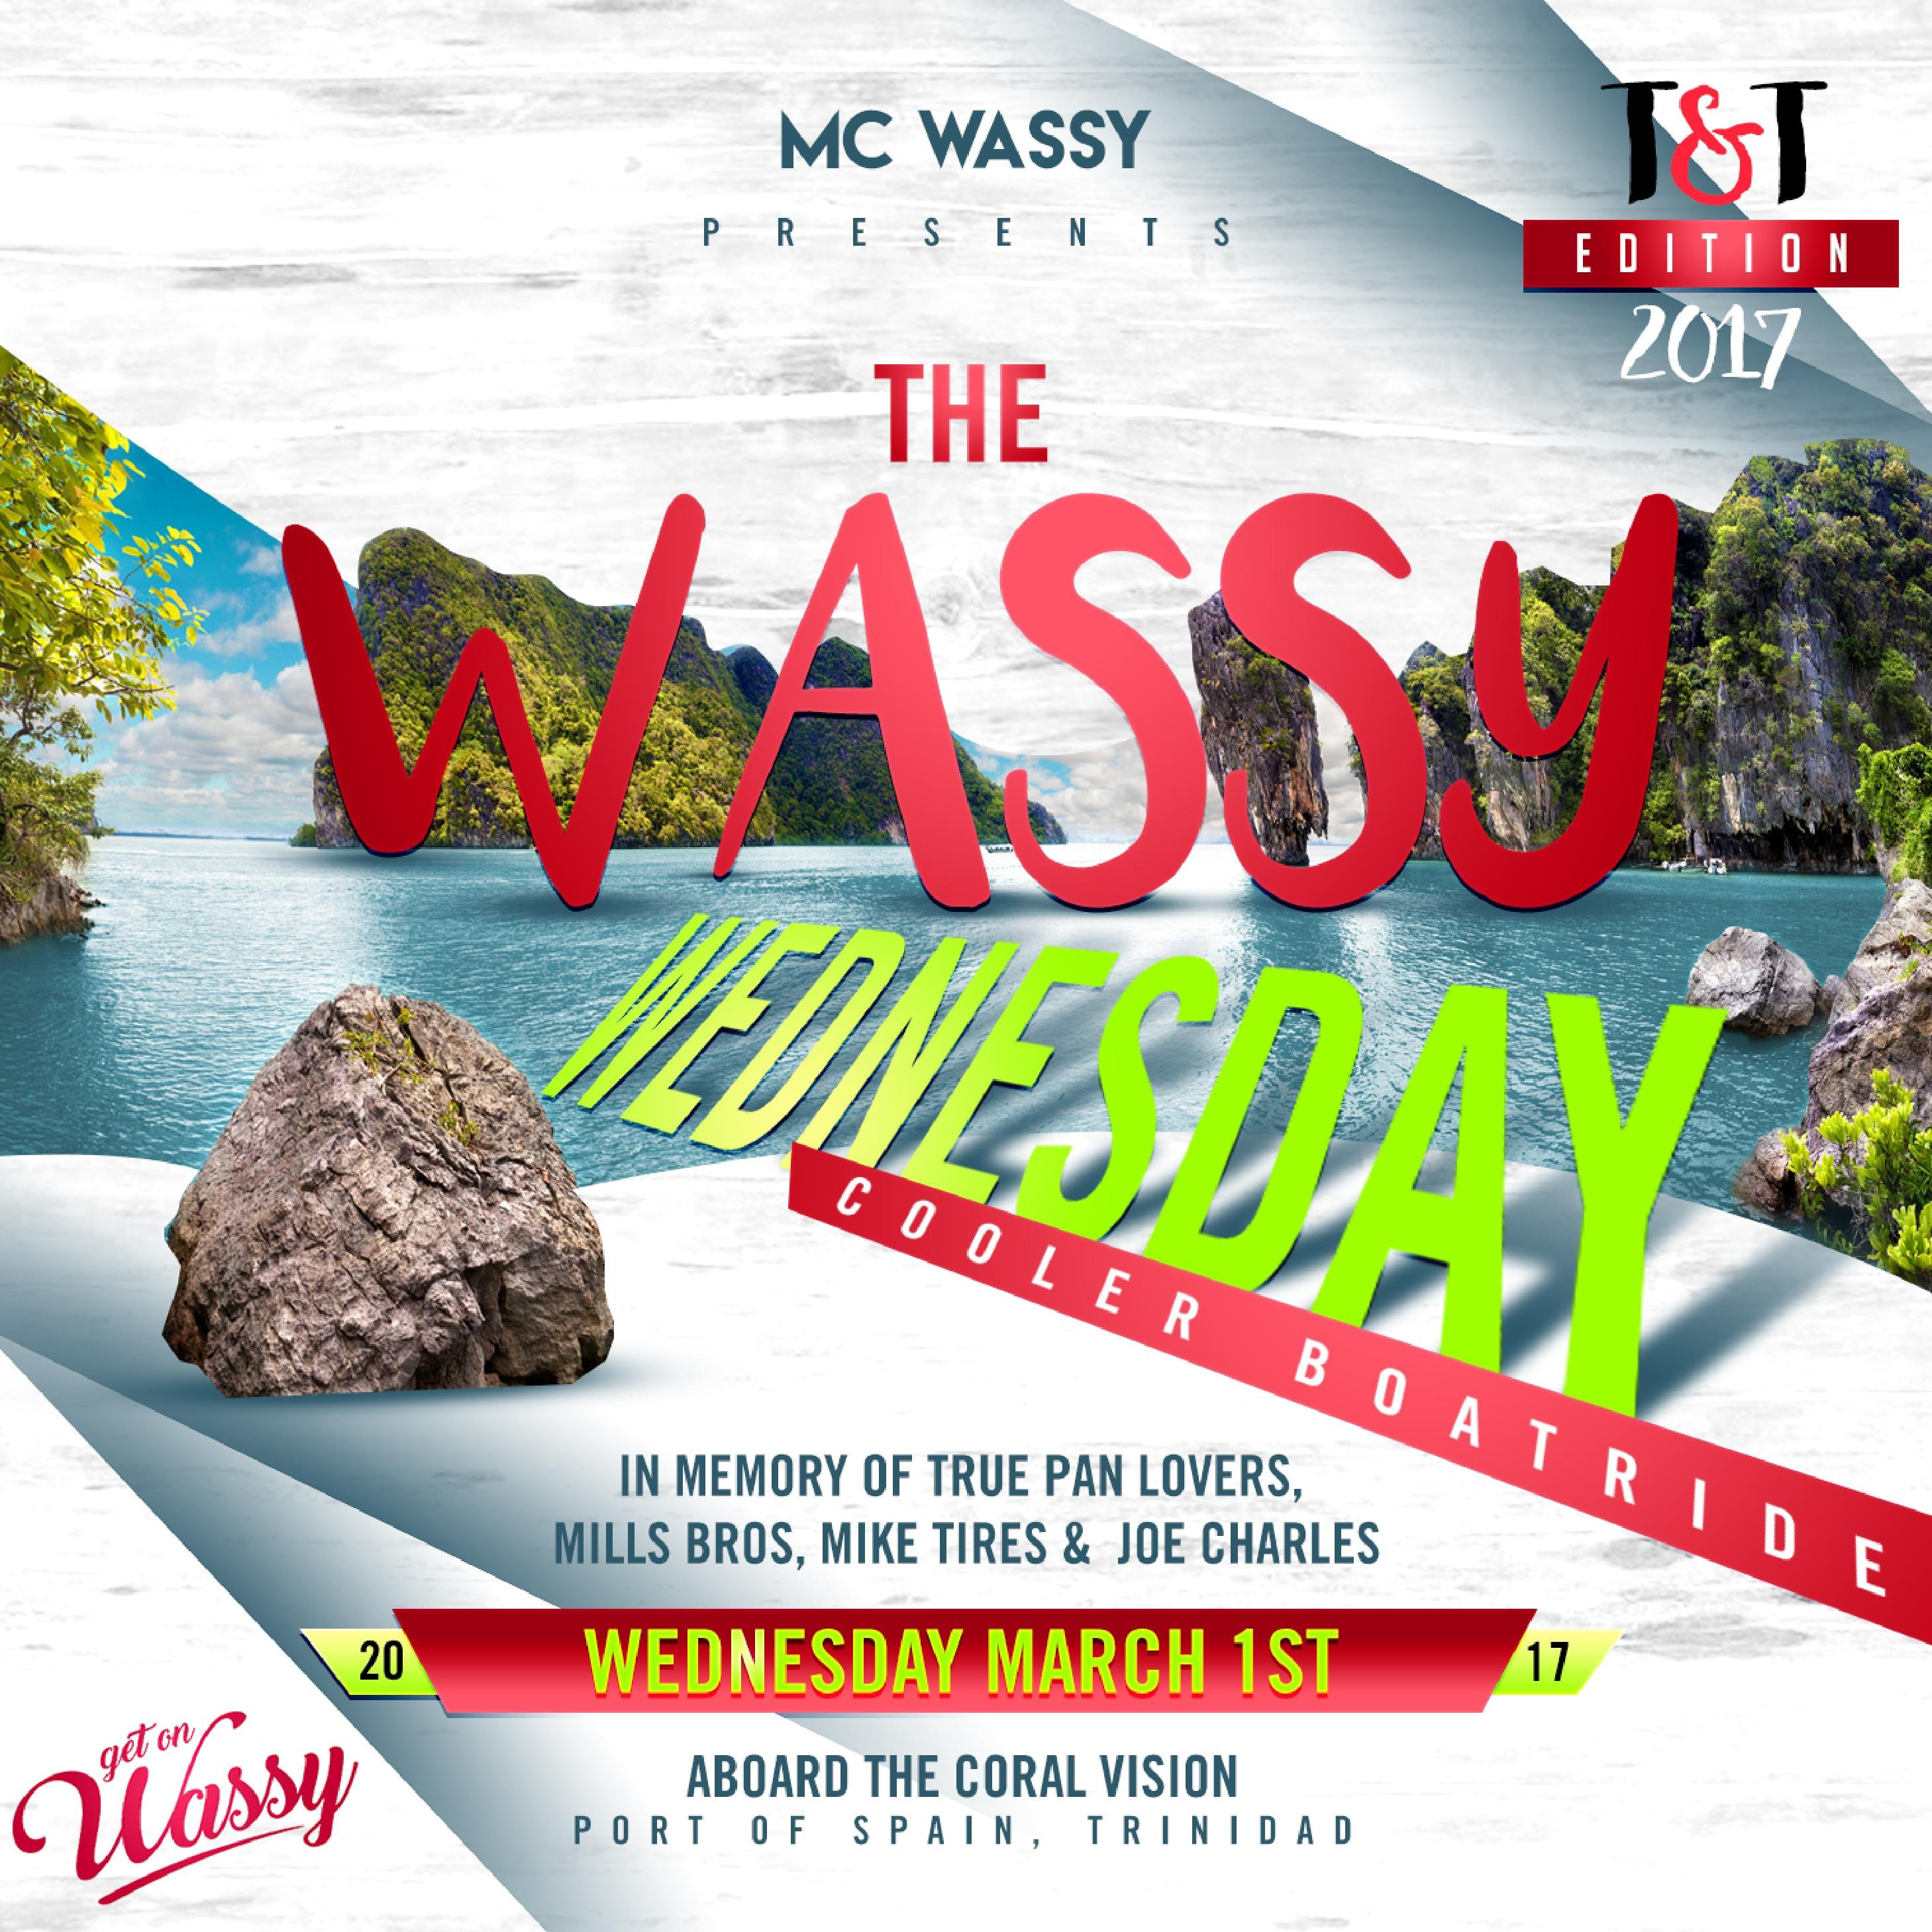 Wassy Wednesday Cooler Boatride T&T Edition